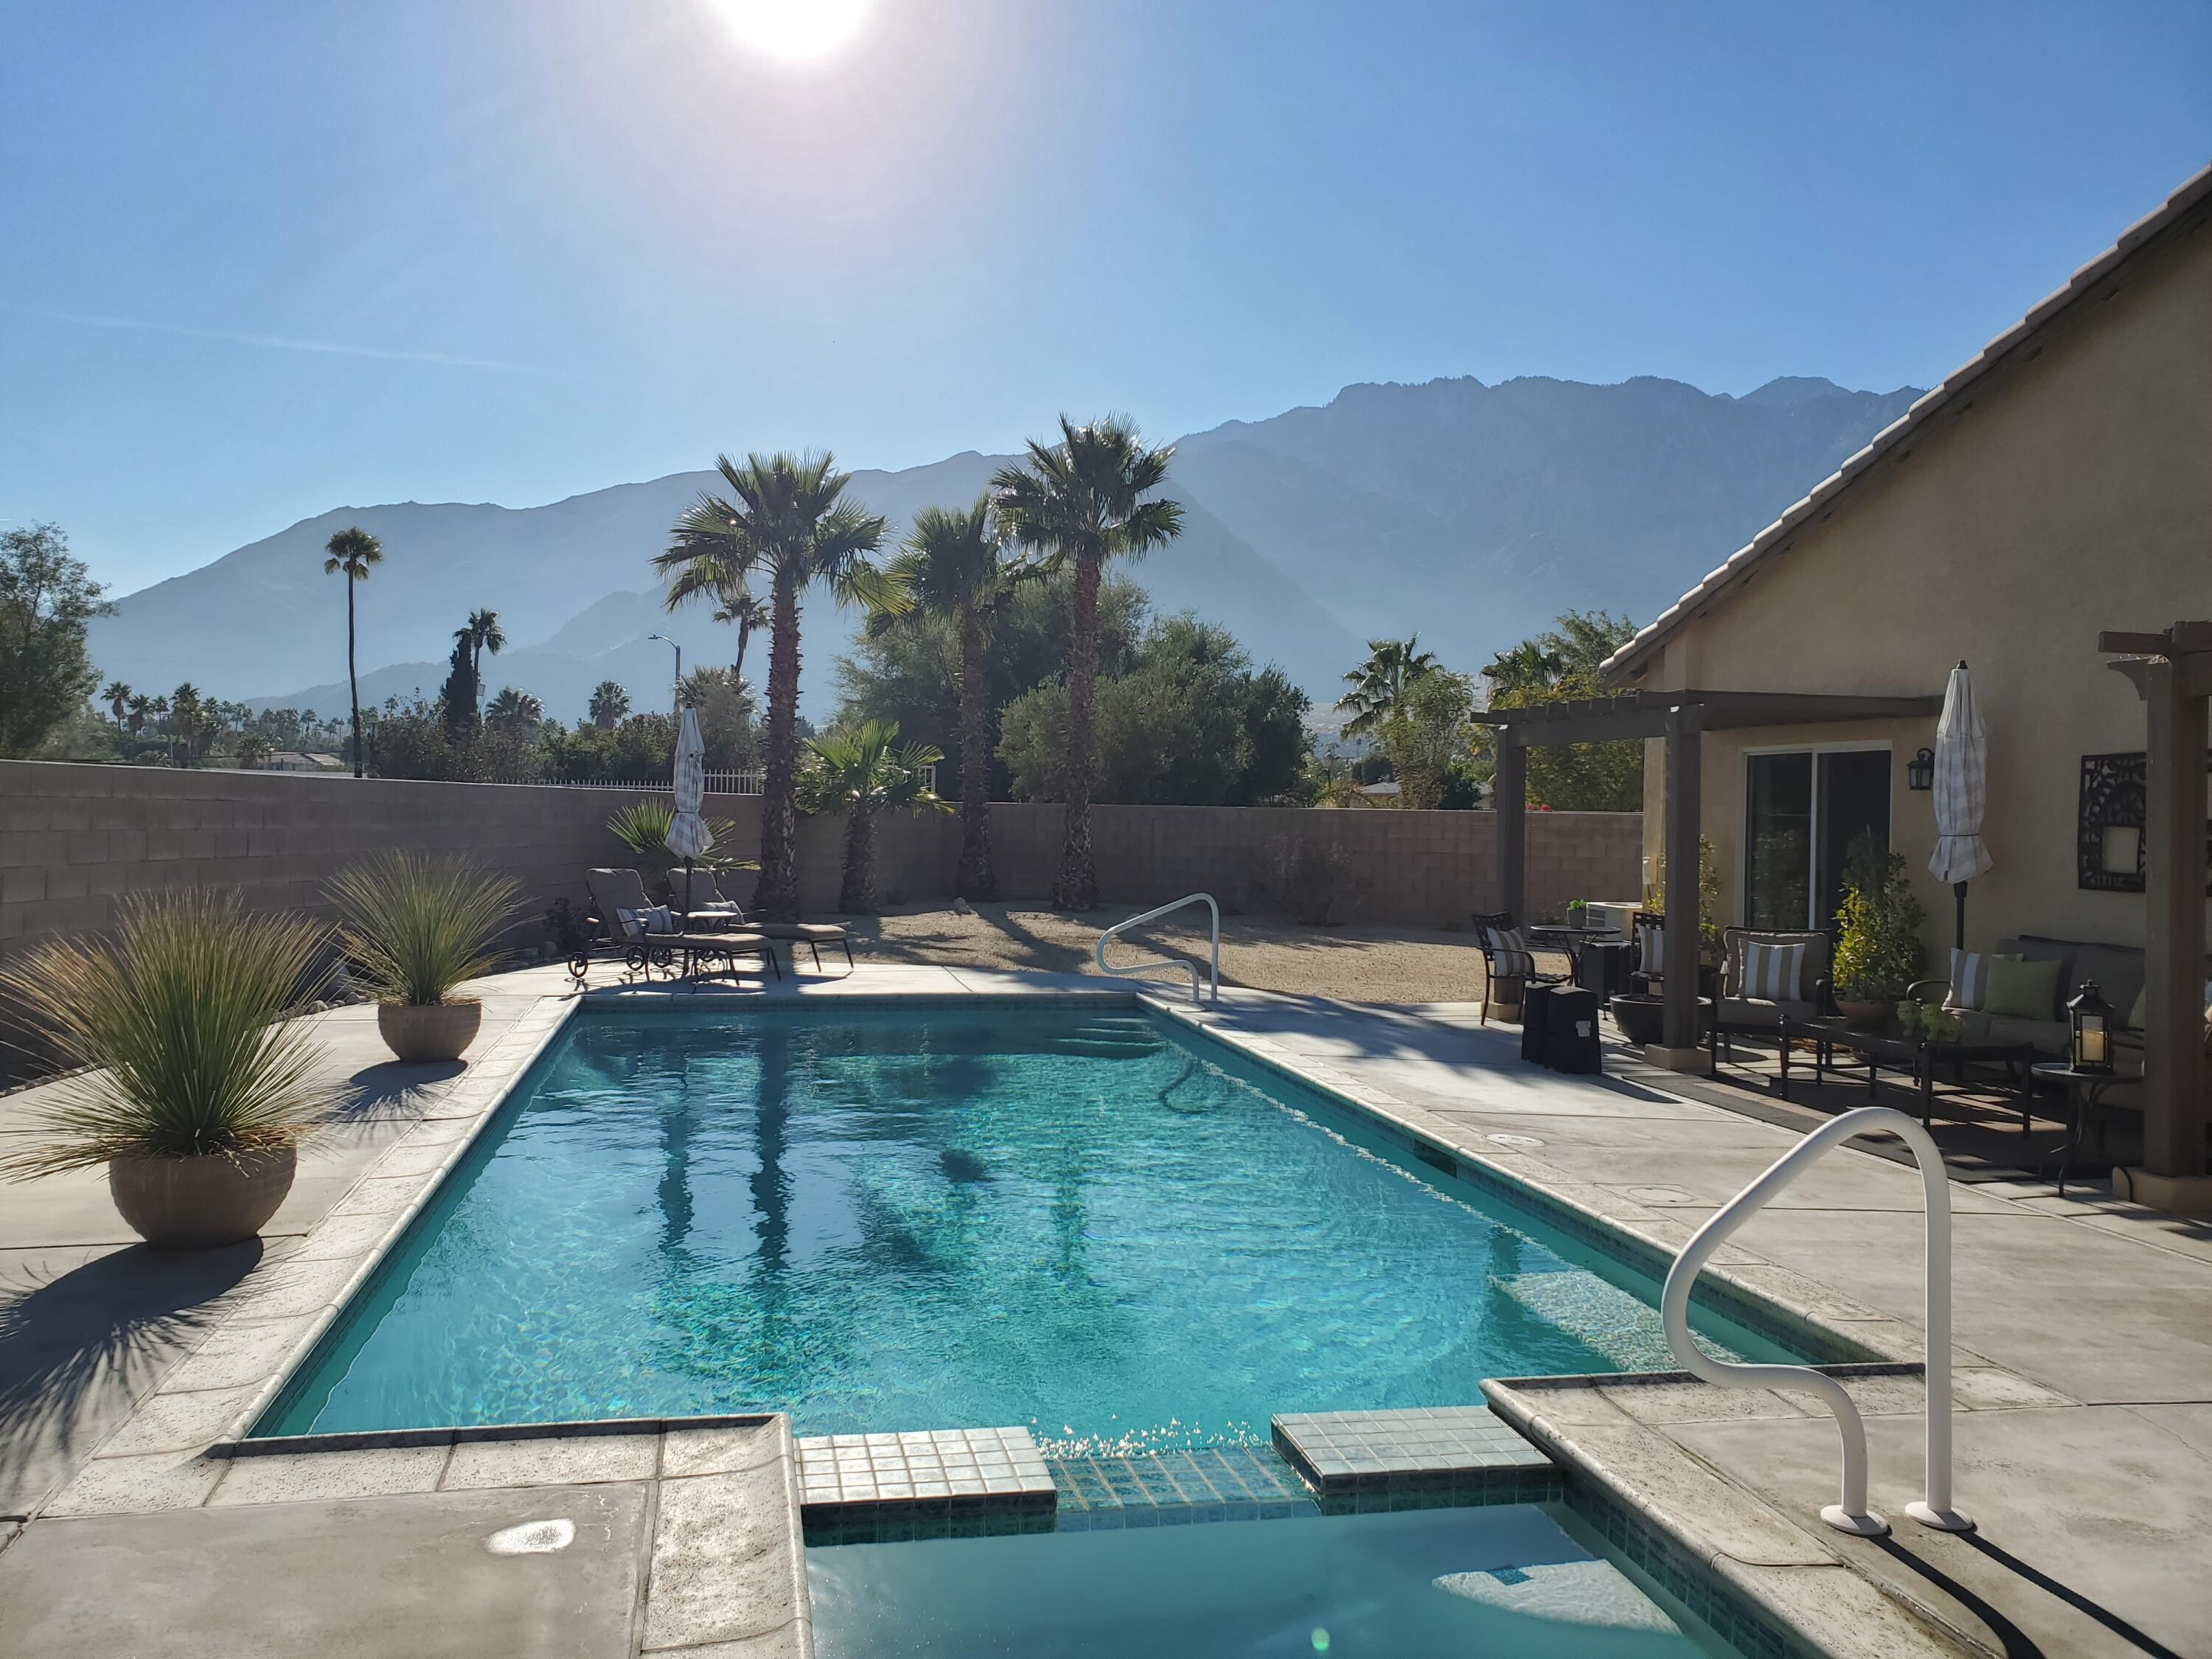 The picture says it all, classic Palm Springs, blue skies, sunshine and Palm Trees!   With that backyard view, you will feel like you are on vacation every day of your life!  This house has been well maintained inside and out.  Perfect vacation home or full time residence!  Large great room has cozy fireplace for those rare cool winter evenings.  Large island for cooking and counter seating.  Has Large pantry and inside laundry room.  Two car attached garage.  Wander outside to your private oasis with large pool and spa, spectacular views and nice outdoor seating or dining area.  This is also one of the rare smaller homes with private gated RV parking!  The community has community pools, spas, tennis courts, basketball court, BBQ / picnic area, playground, walking trails, and roving patrol. Super low HOA dues at 120/month.  You own the land!   Located just off Palm Canyon, a short drive to dining, shopping, entertainment and the Palm Springs Tram.